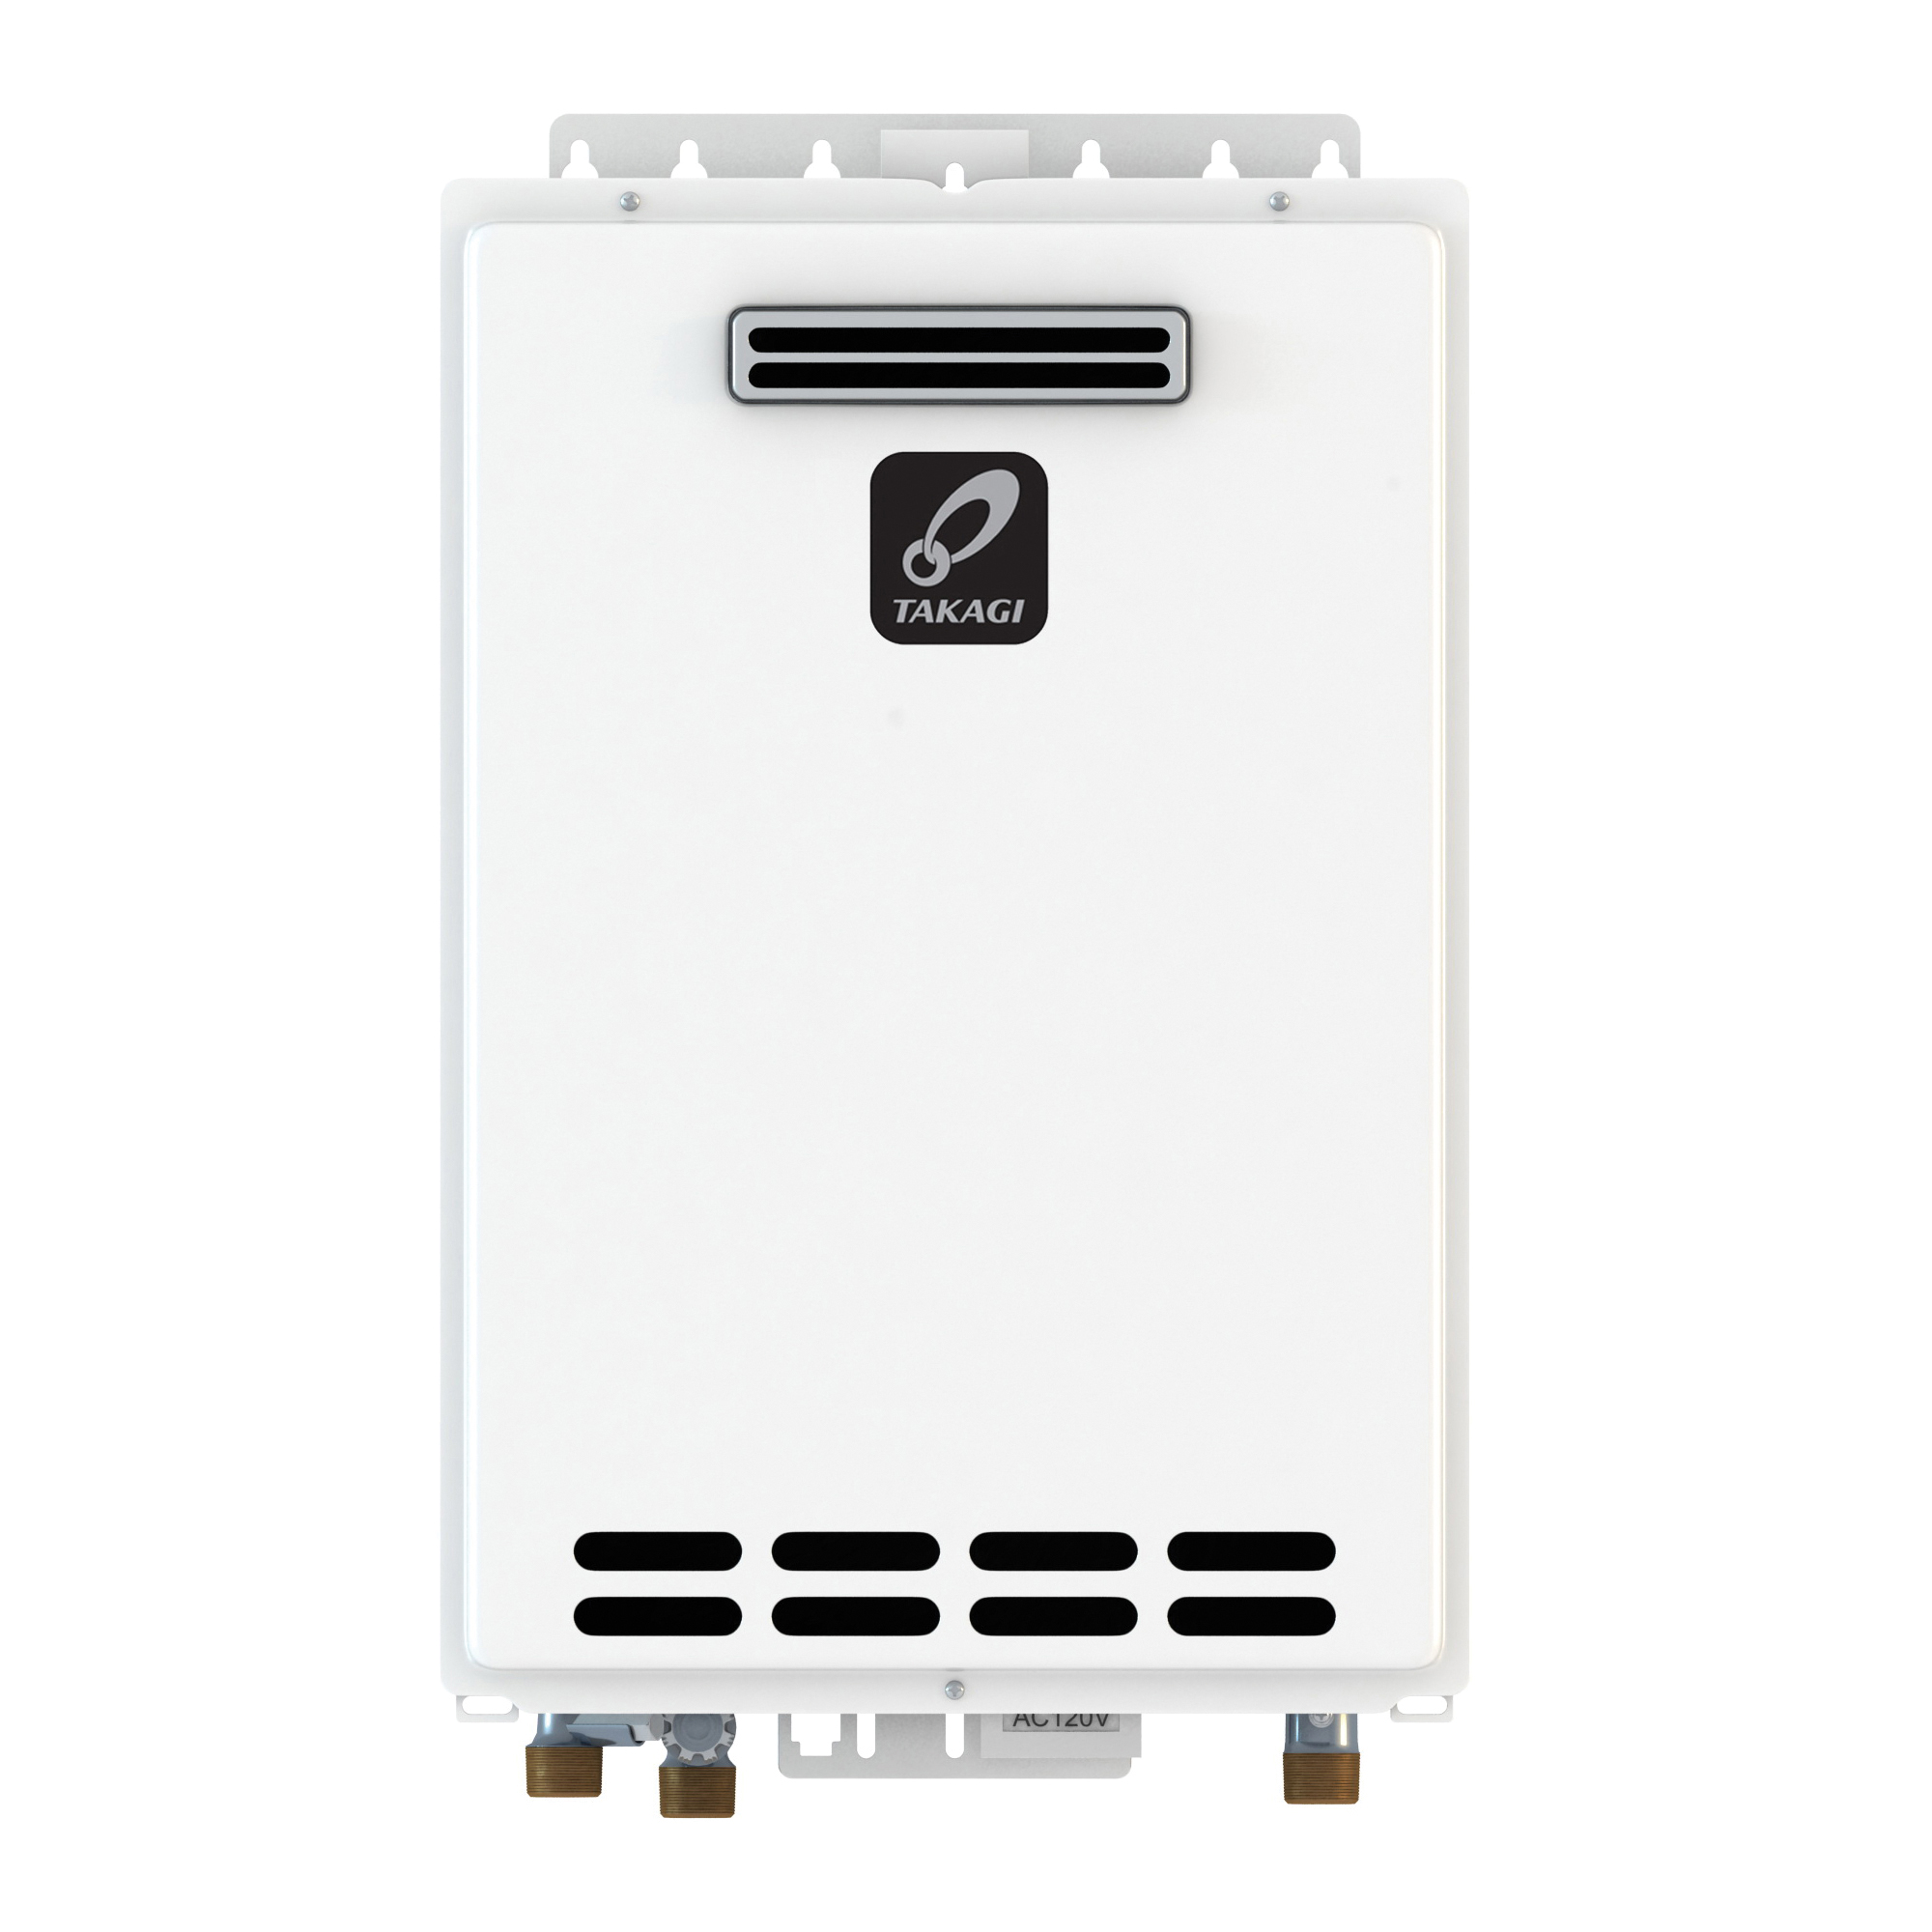 Takagi 100123252 KJr2 Tankless Water Heater, Natural Gas, 140000 Btu/hr Heating, Outdoor, Non-Condensing, 6.6 gpm, 4 in, 0.79 Energy Factor, Commercial/Residential/Dual: Dual, Ultra Low NOx: No